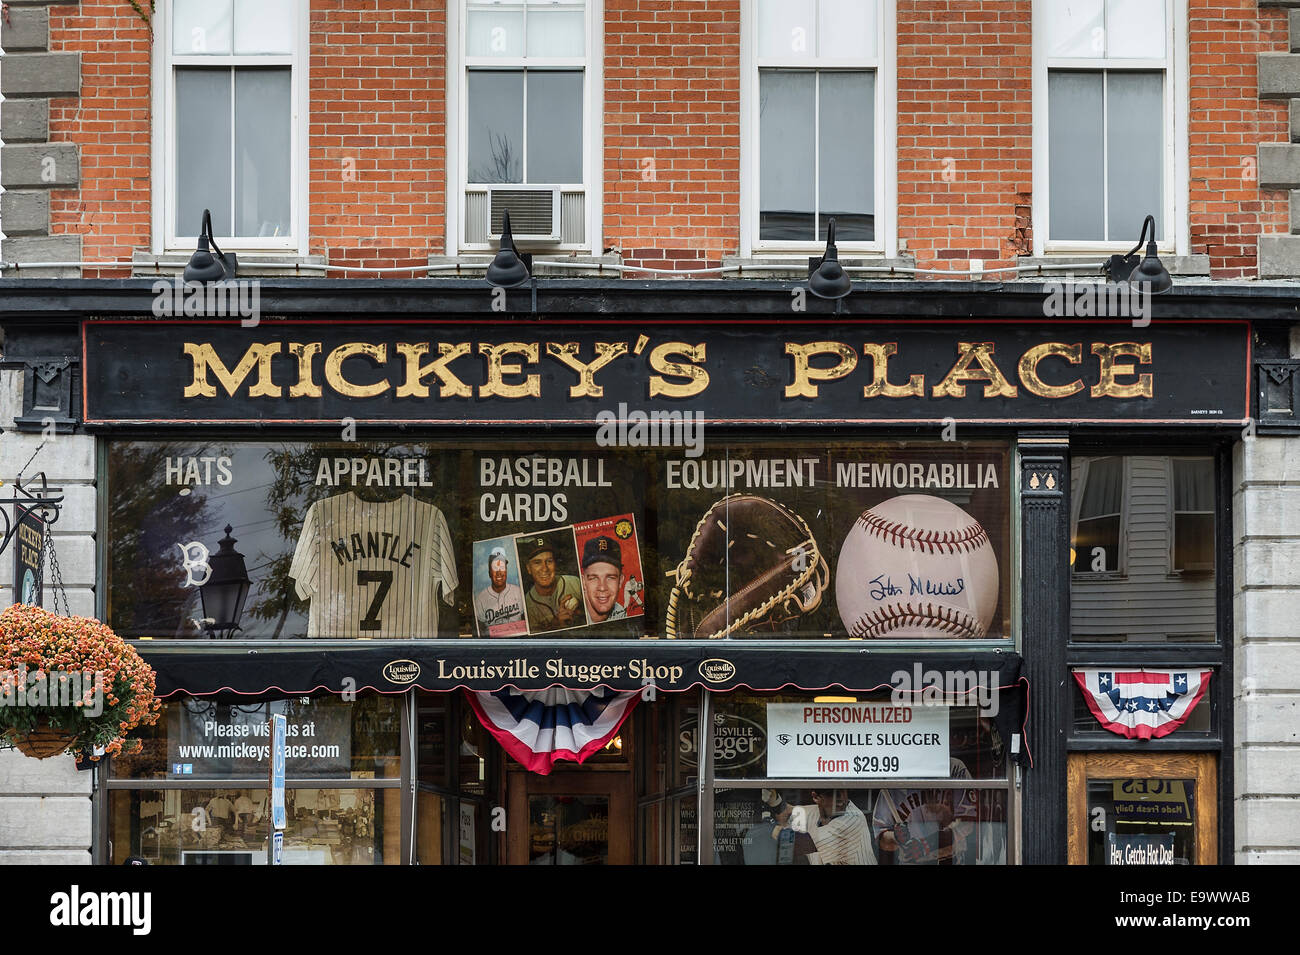 Mickey's Place baseball memorabilia and souvenir shop, Cooperstown, New York, USA - Stock Image